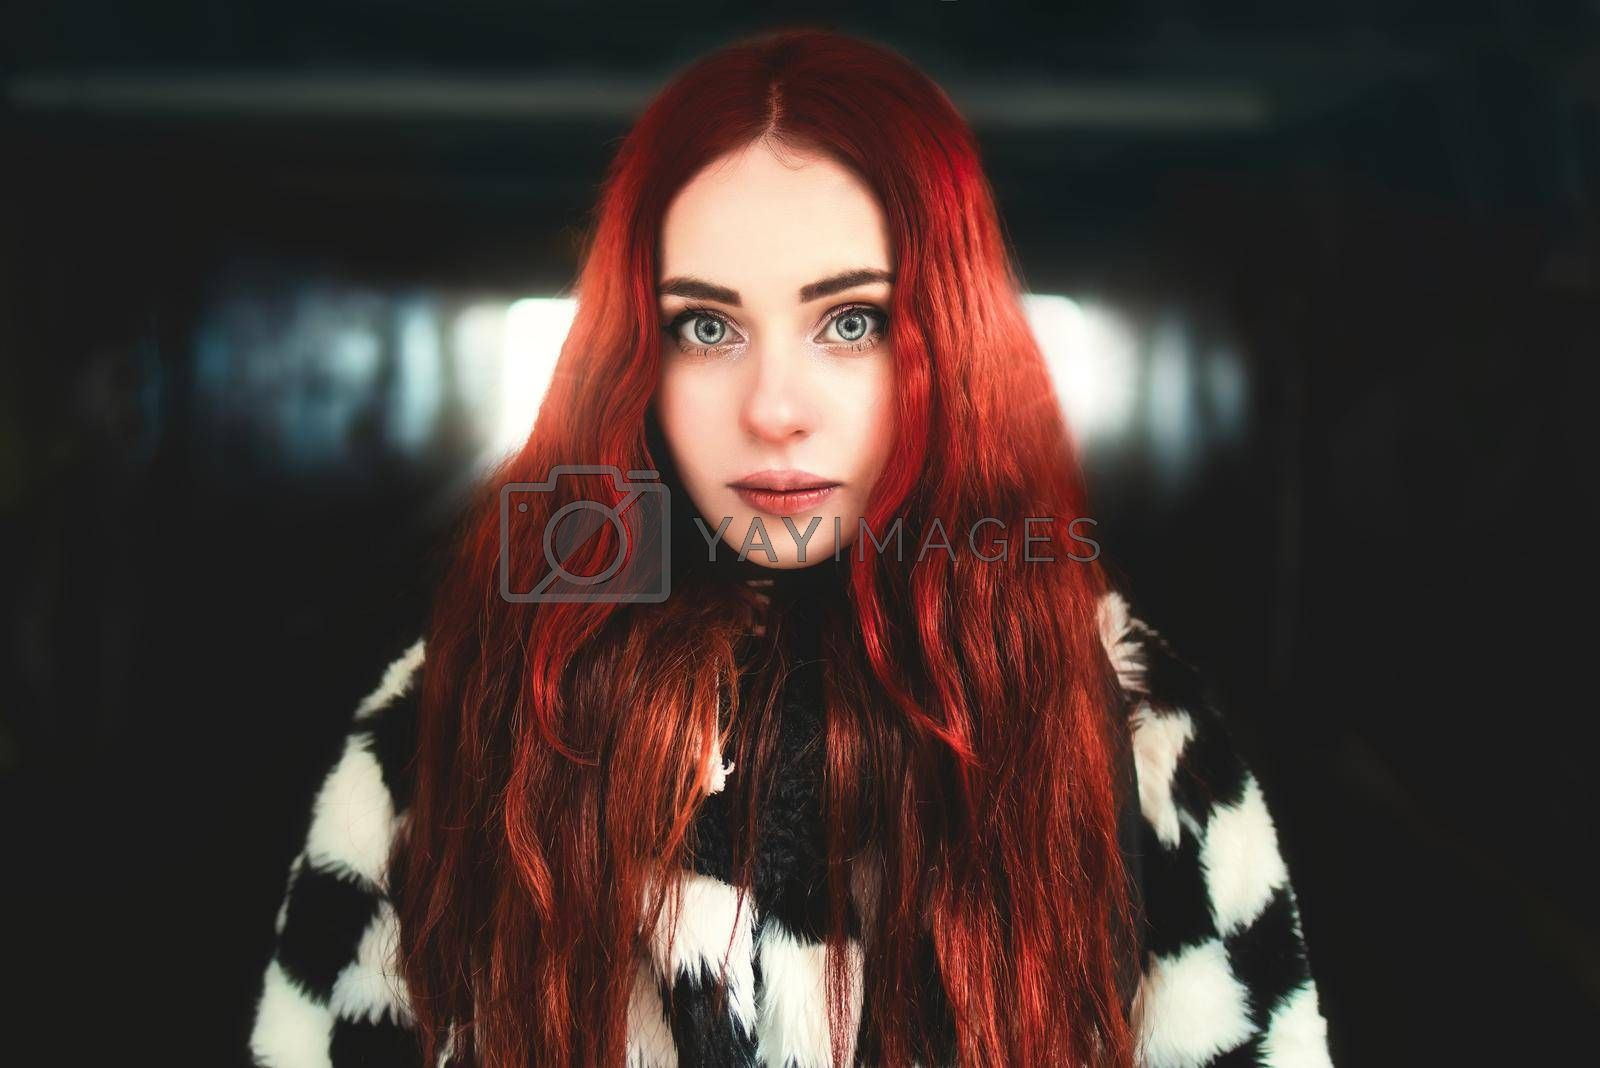 Royalty free image of beautiful woman with red hair standing in the underground passage by Nickstock